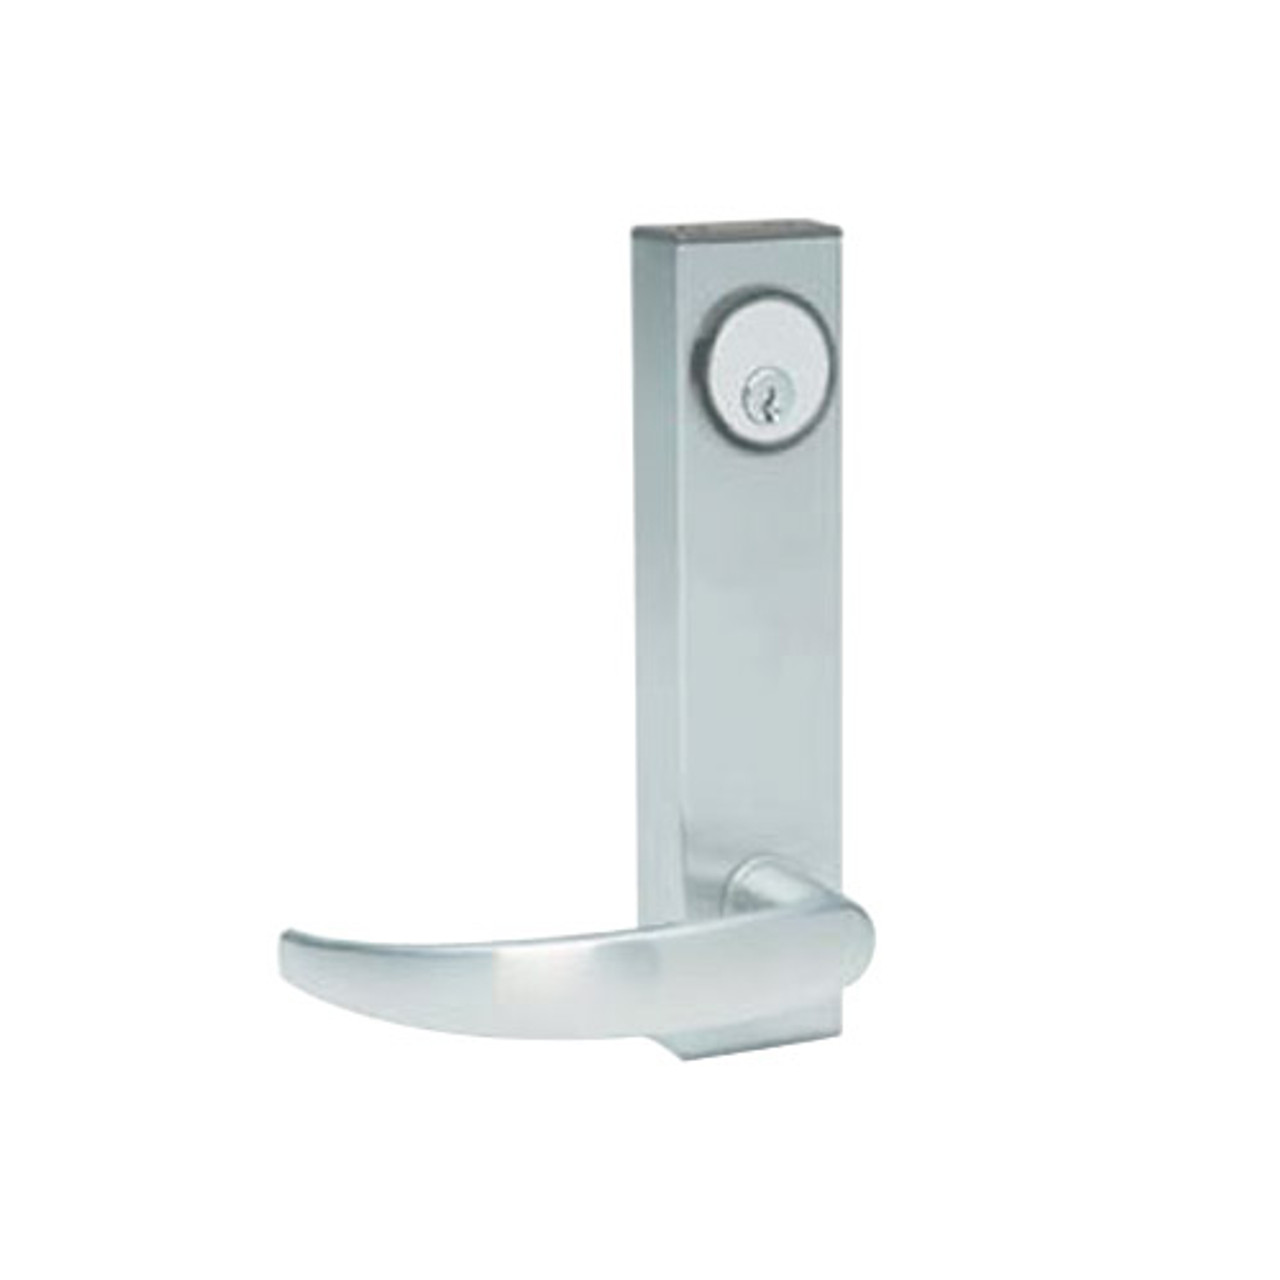 3080E-01-0-96-55 US32 Adams Rite Electrified Entry Trim with Curve Lever in Bright Stainless Finish